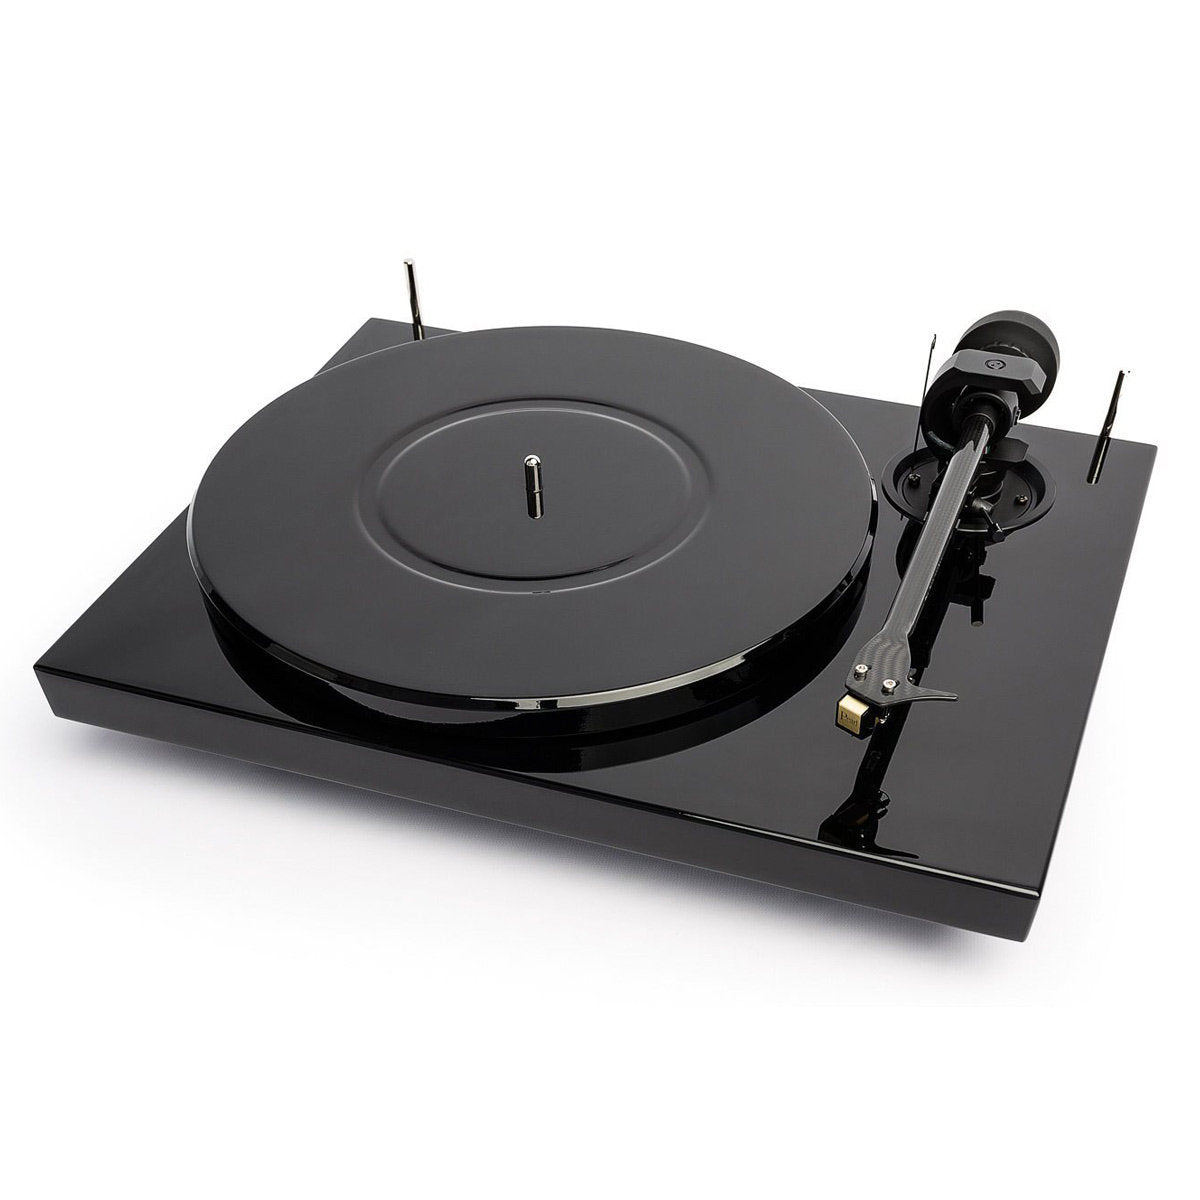 Pro-Ject: 1 Xpression Carbon Turntable / Pearl Cartridge - Piano Black